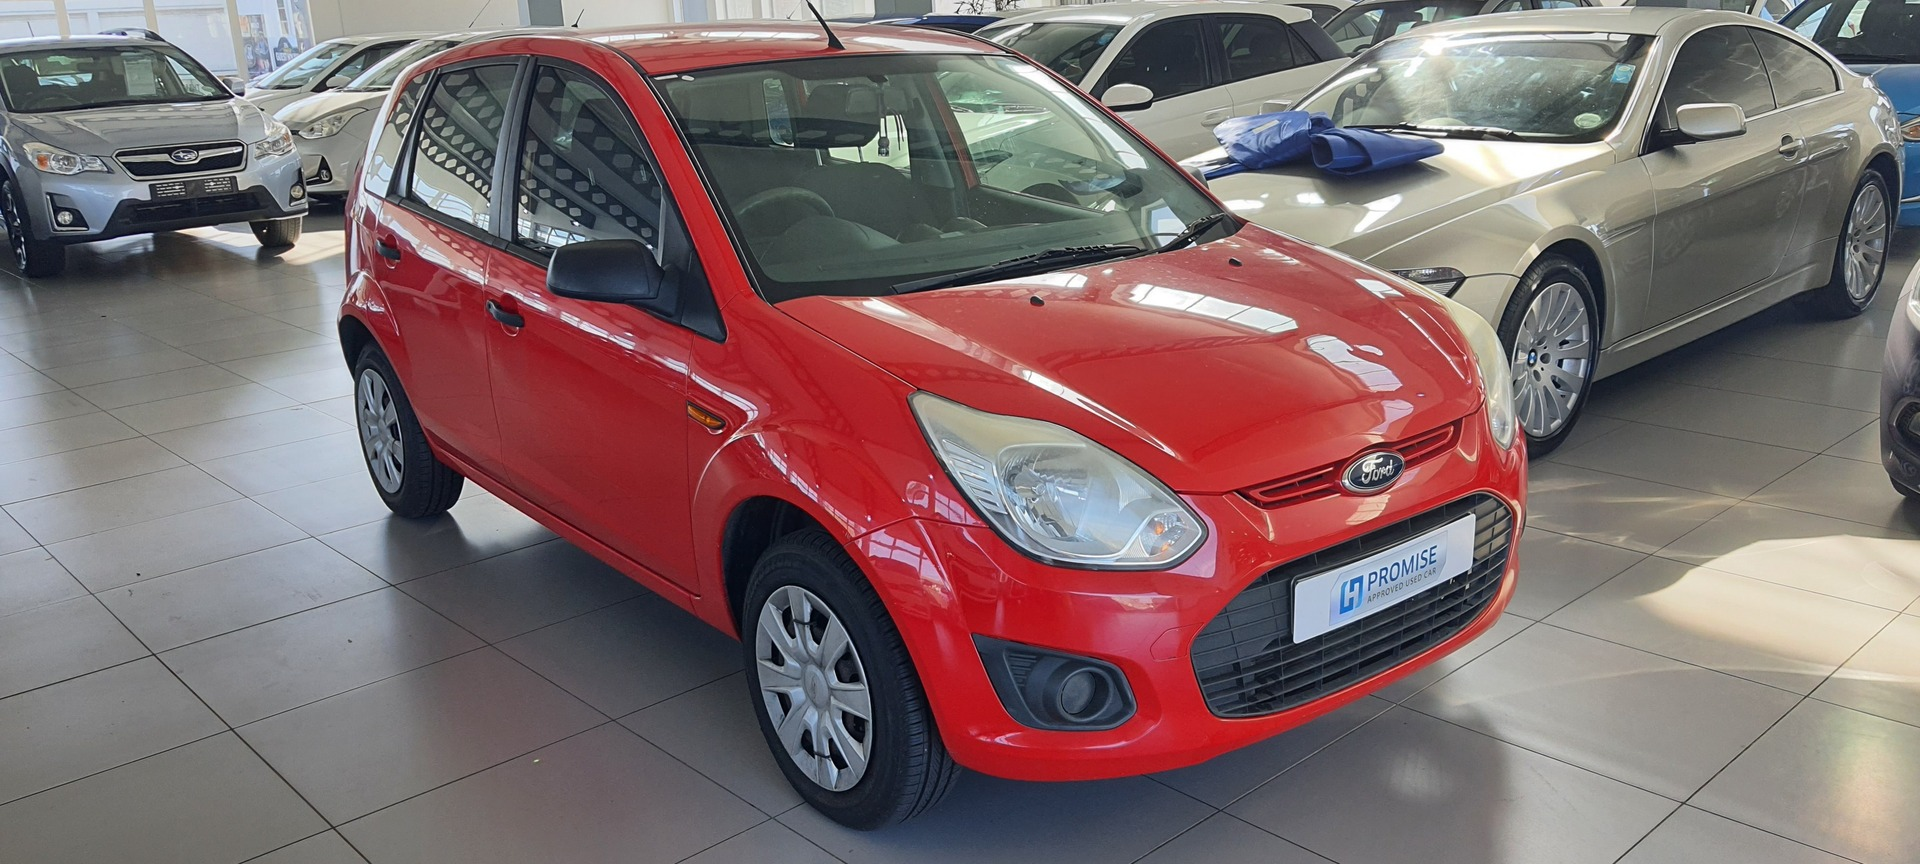 FORD 1.4 AMBIENTE Bellville 0335701